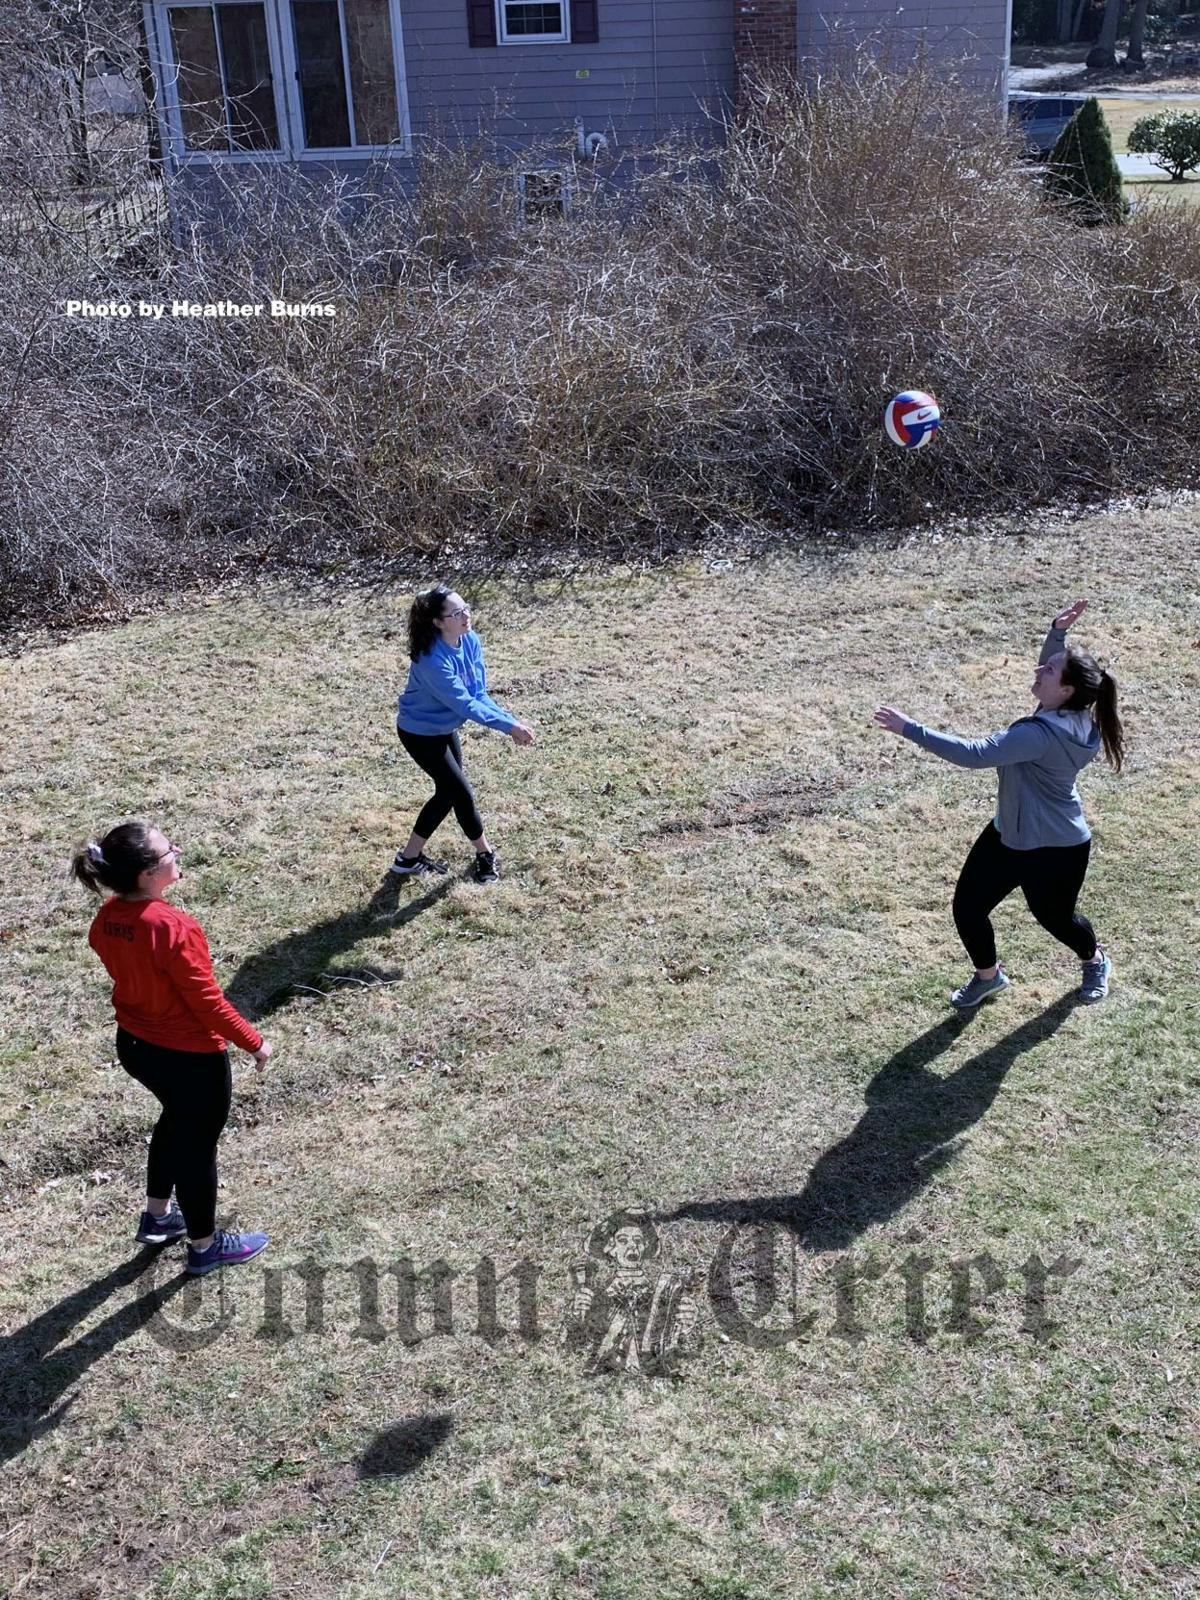 A game of volleyball for exercise